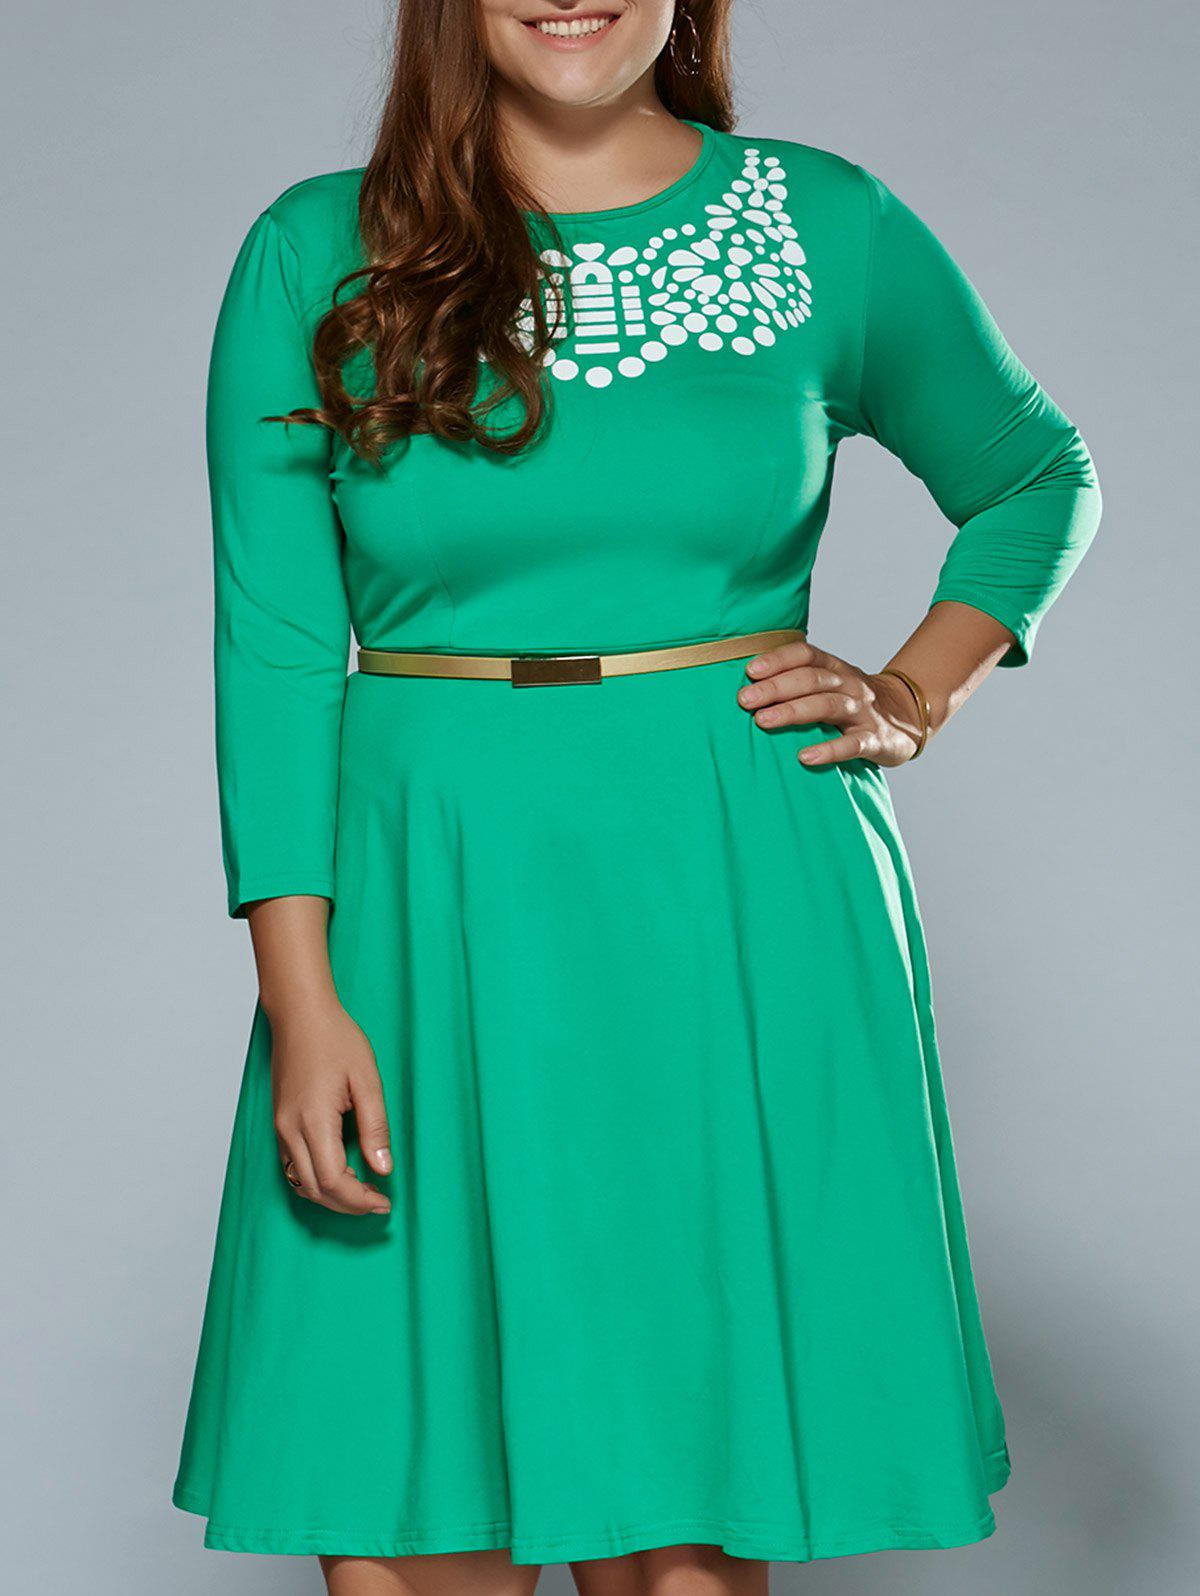 2018 Plus Size Printed Fit And Flare Modest Dress Apple Green Xl In